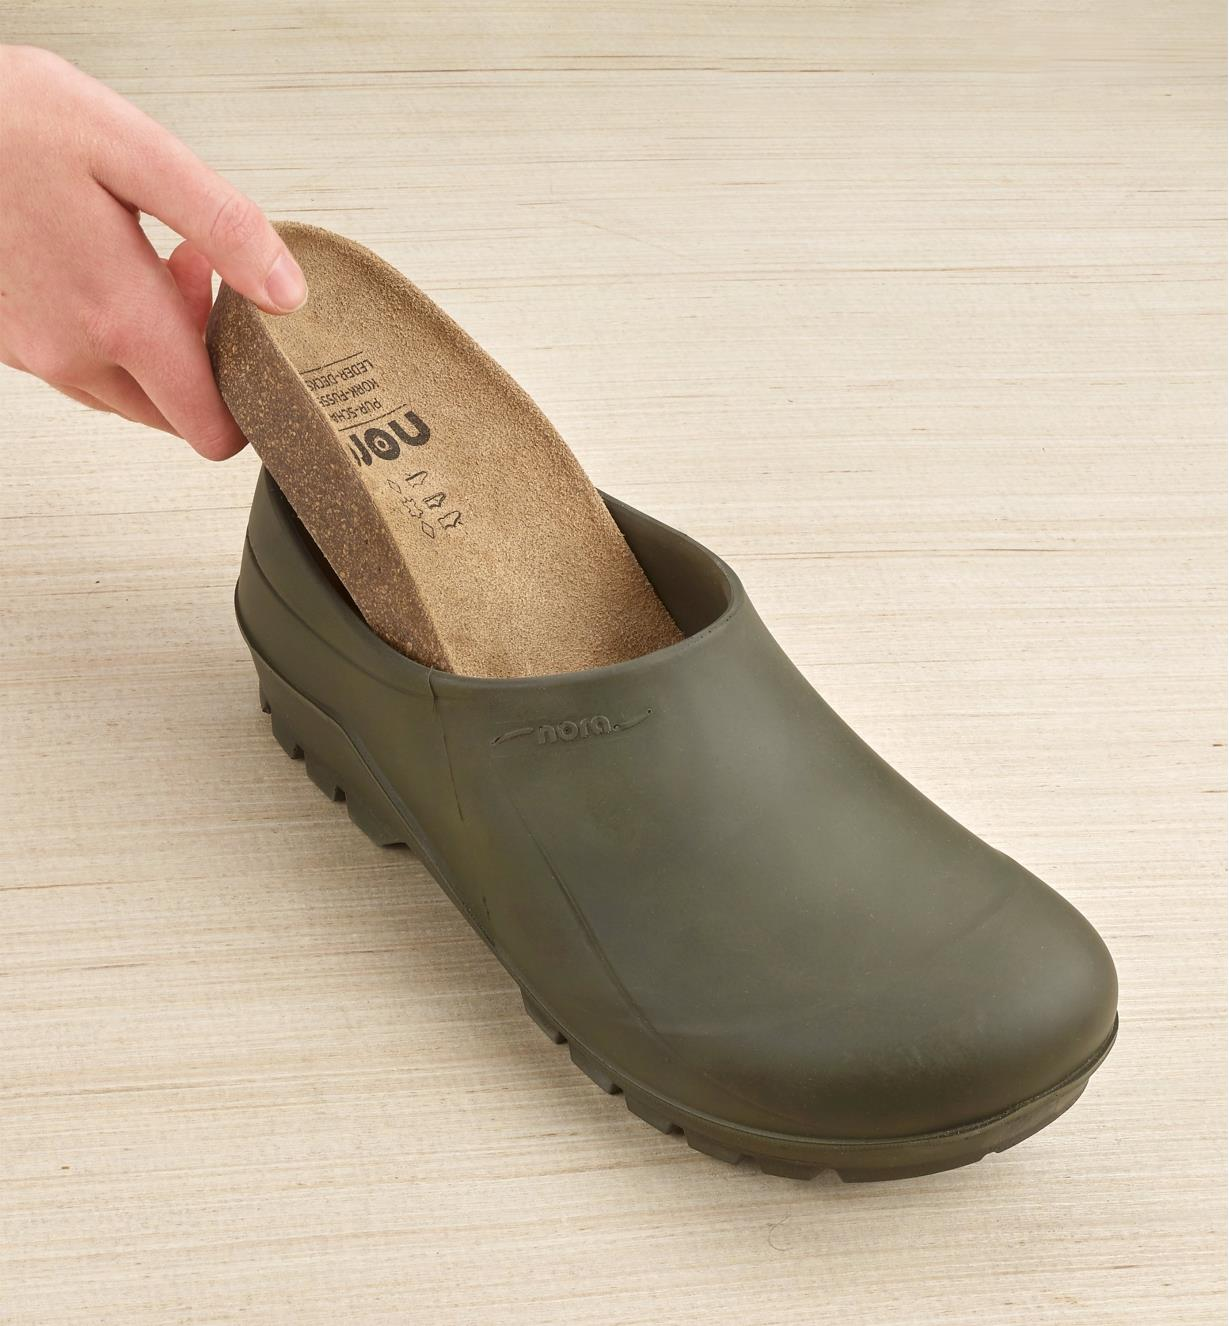 The removable cork insole being slipped into a European garden clog